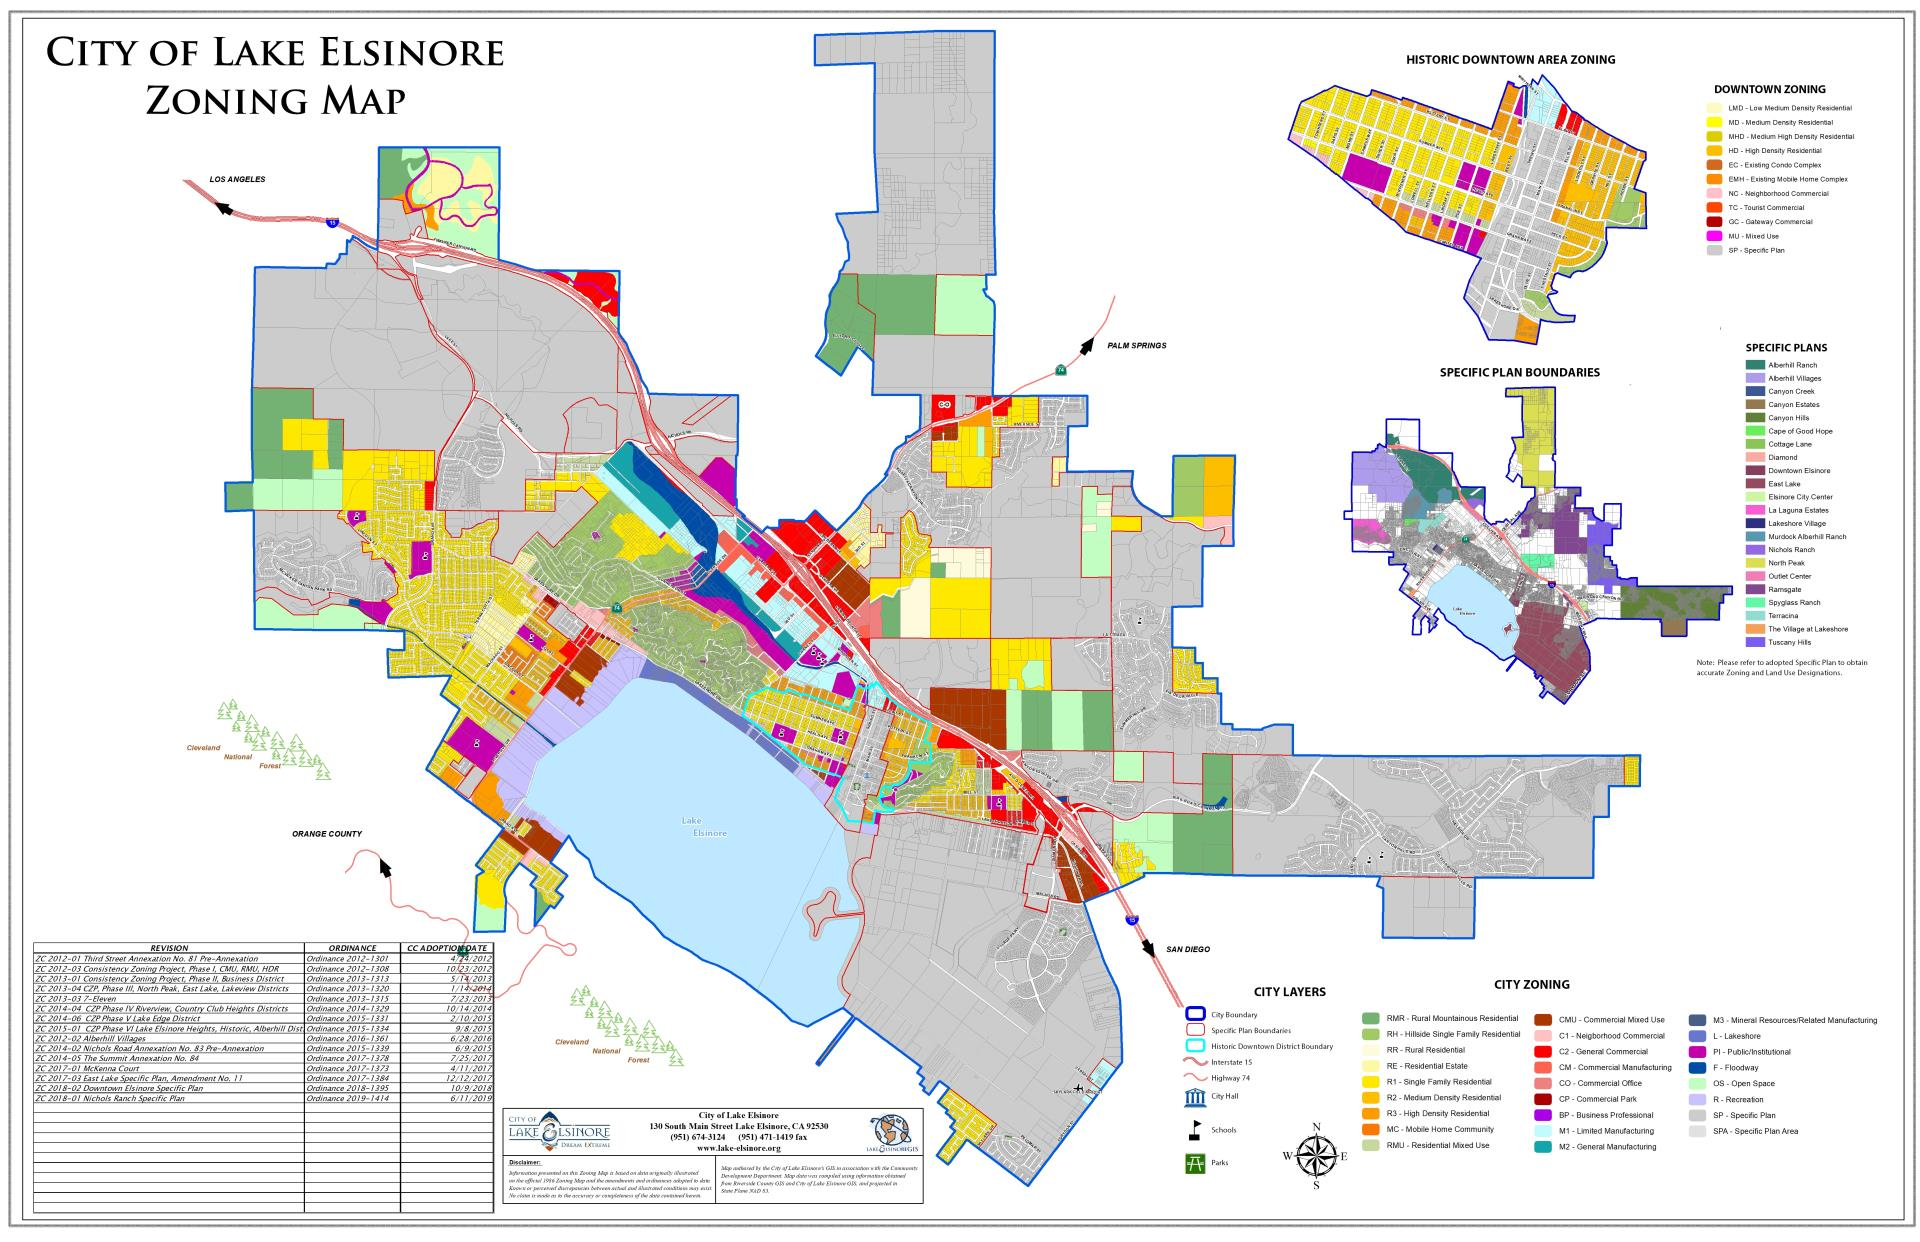 City of Lake Elsinore : GIS Map Gallery San Go Zoning Map on parking map, business map, mashpee ma town map, streets map, india earthquake zone map, residential map, e zone map, survey map, climate zone map,